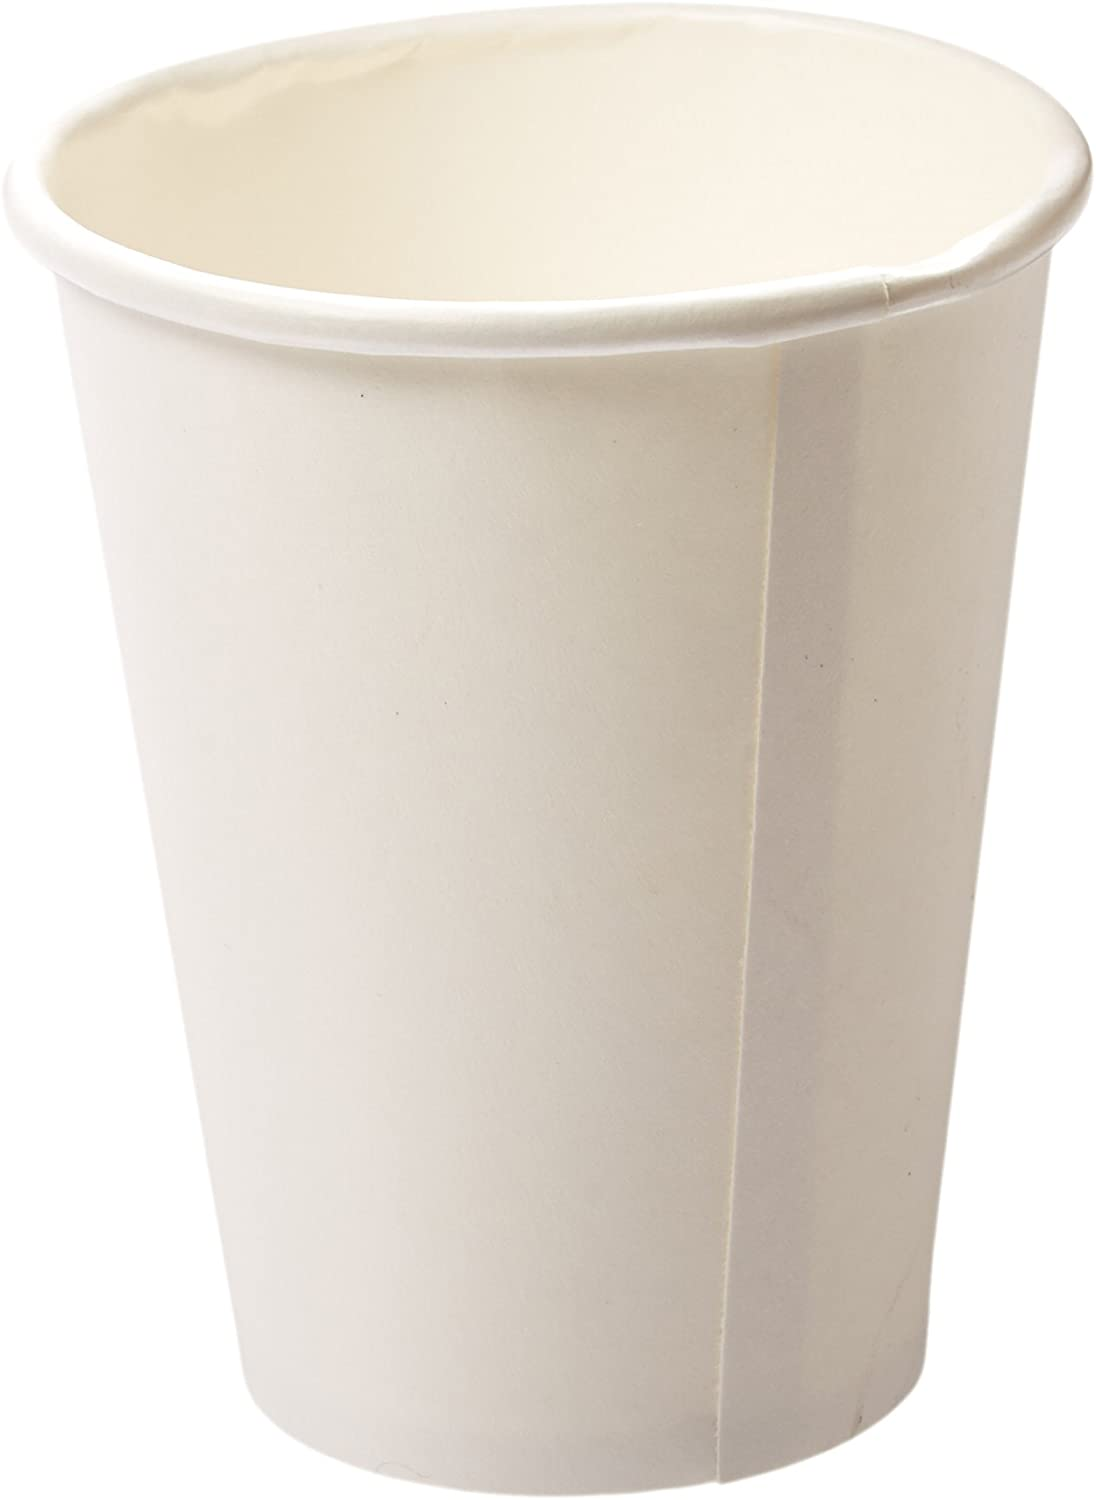 Genuine Joe GJO19047PK Polyurethane-Lined Single-Wall Disposable Hot Cup, 12-Ounce Capacity, White (Pack of 50)